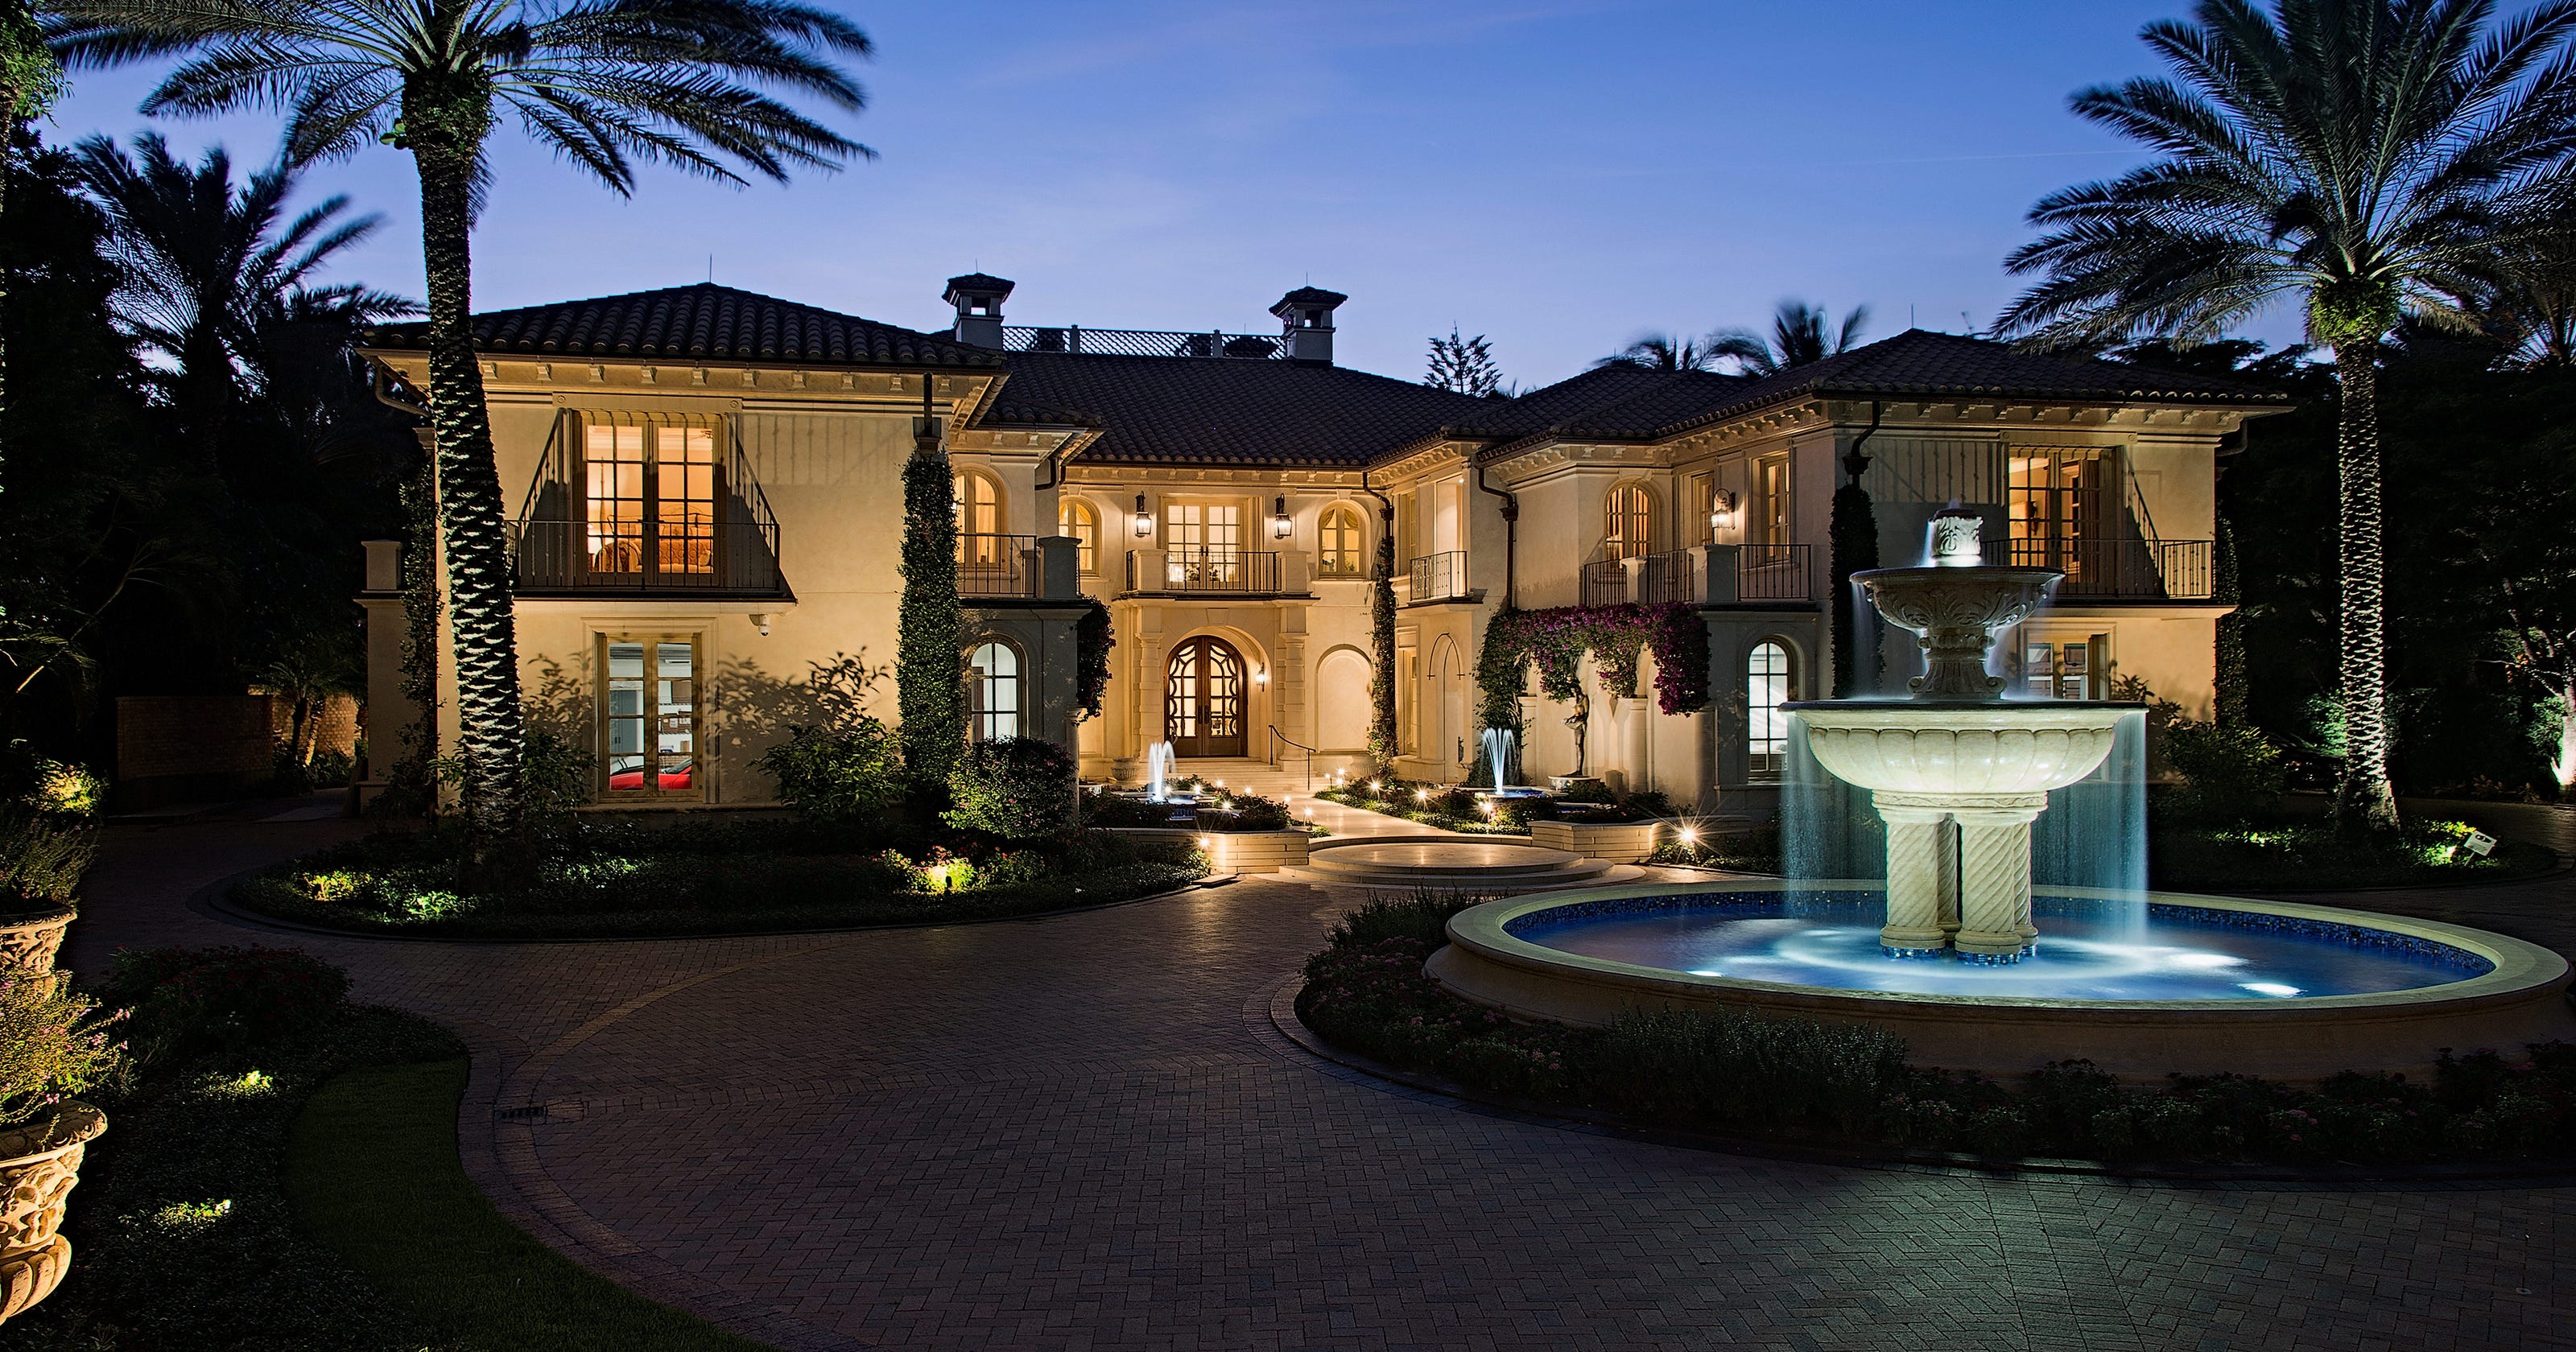 Two Gulf-front mansions in Naples among priciest homes for sale in Fla